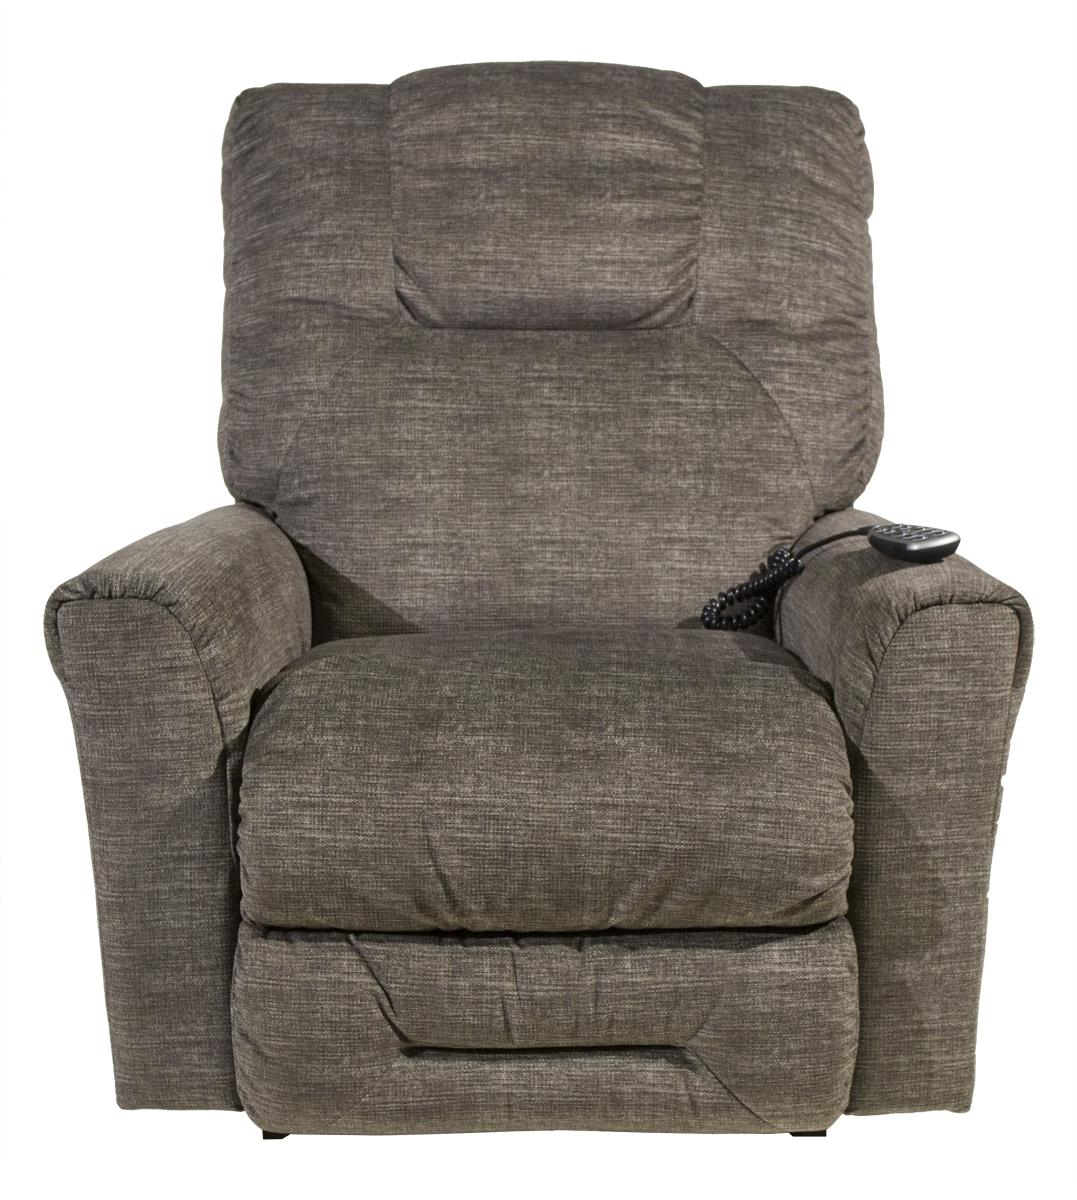 La Z Boy Easton Recliner Item Number P1m702 C125658 007